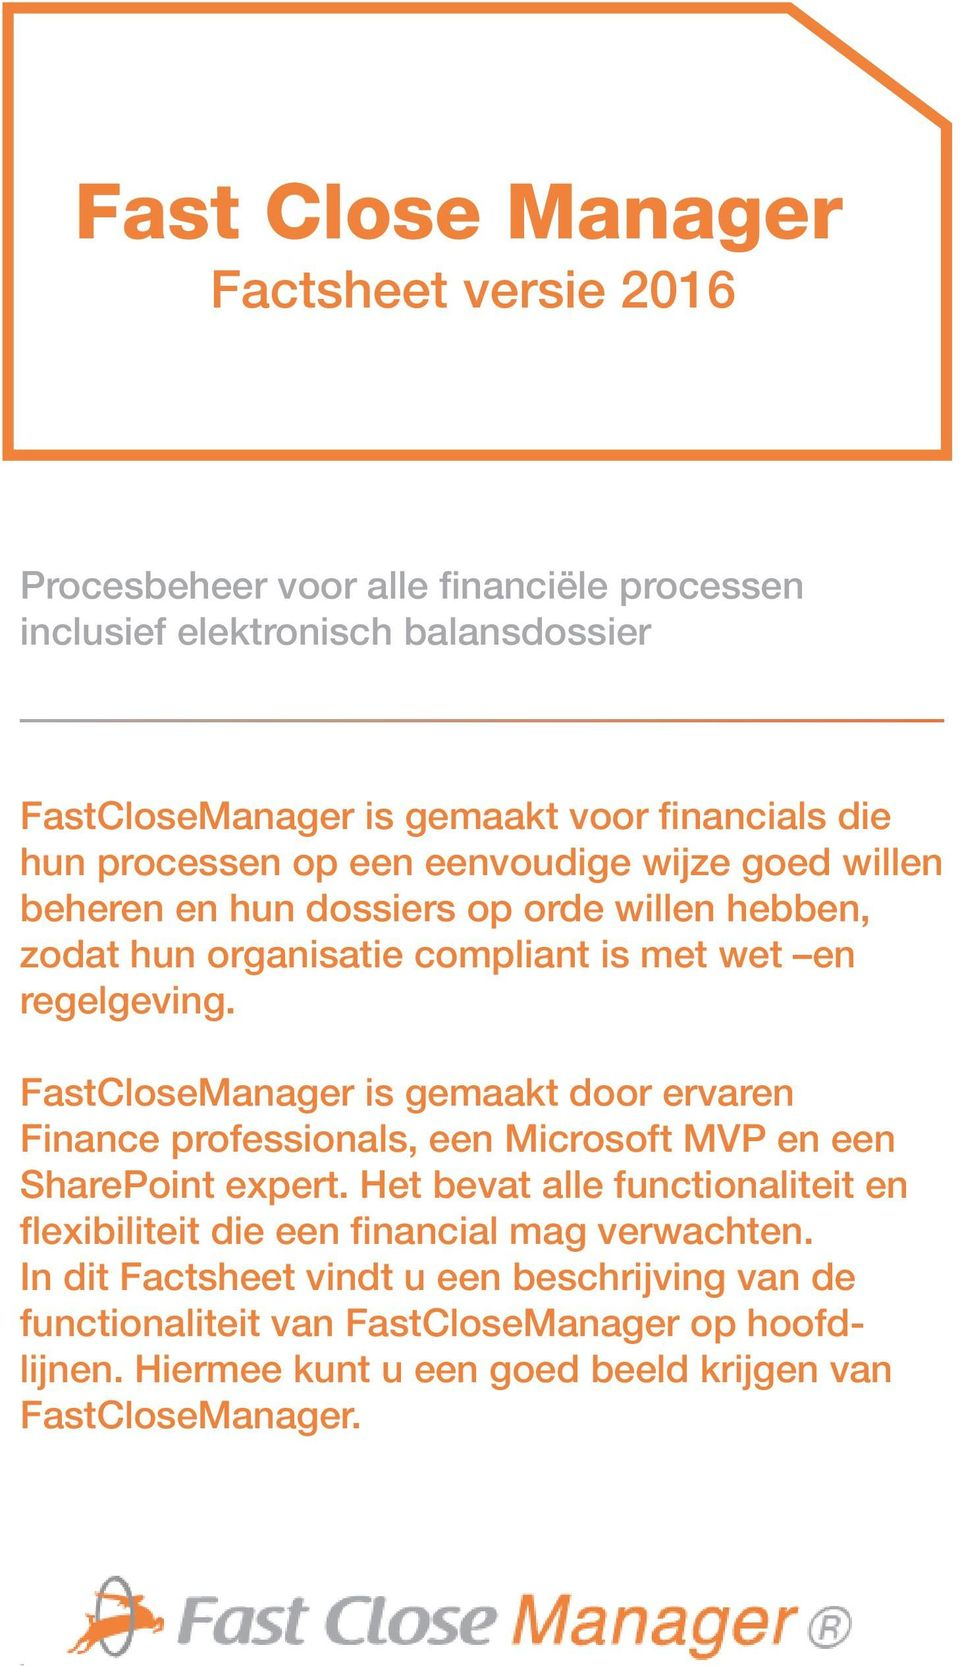 FastCloseManager is gemaakt door ervaren Finance professionals, een Microsoft MVP en een SharePoint expert.